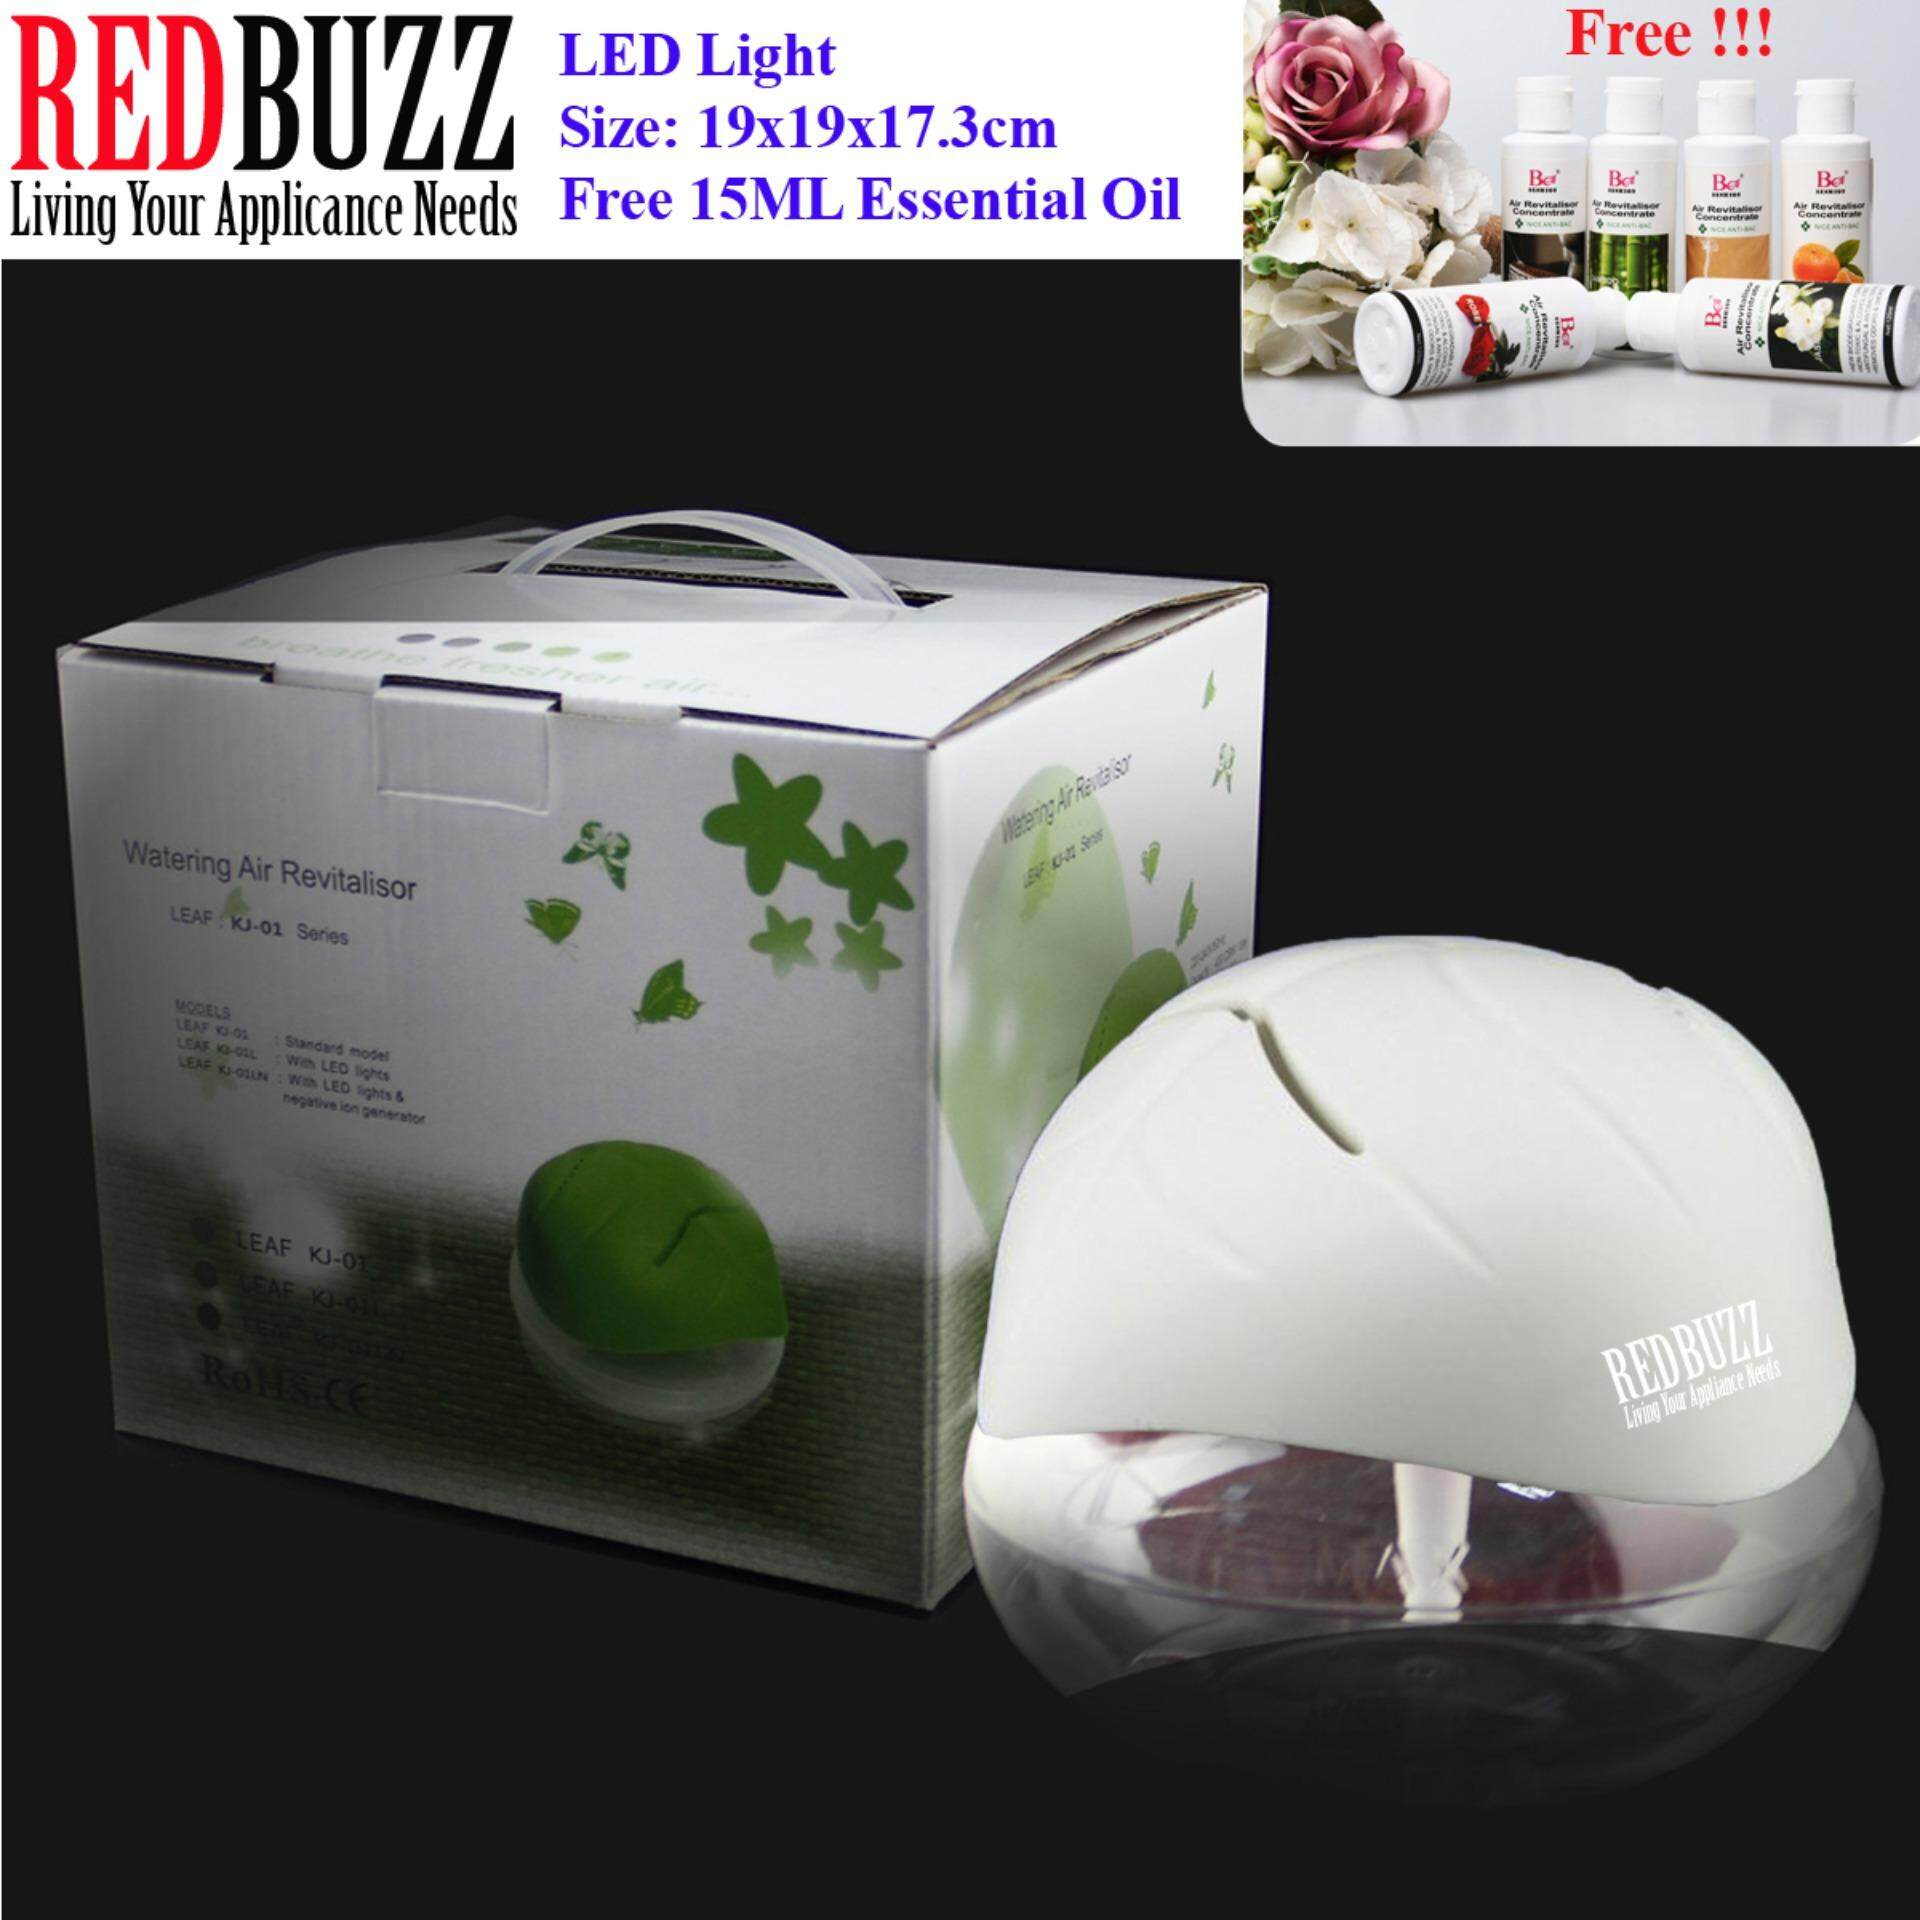 REDBUZZ Watering Air Revitalisor Fresh Air Purifier Aroma Diffuser with LED light + Free 15ML Essential Oil (White Color)